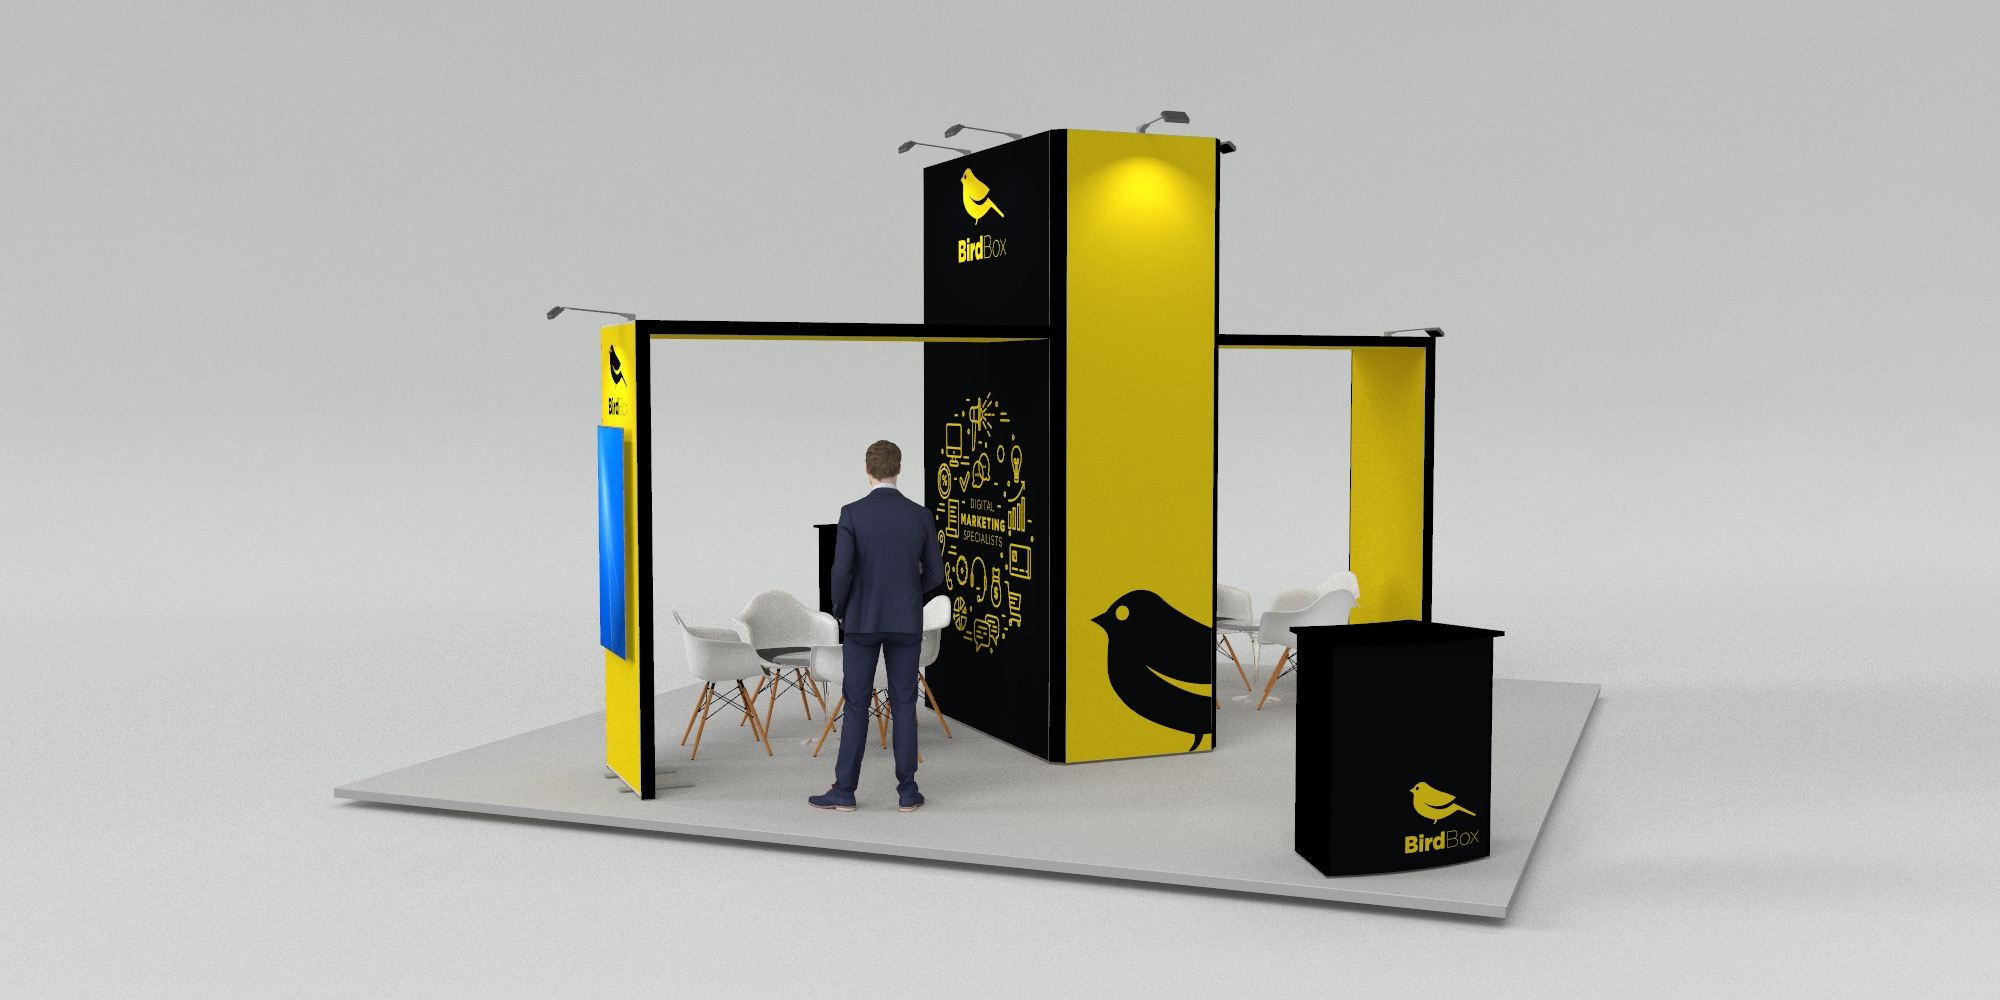 6x6m Island Exhibition Stand with 2 Arches View 1